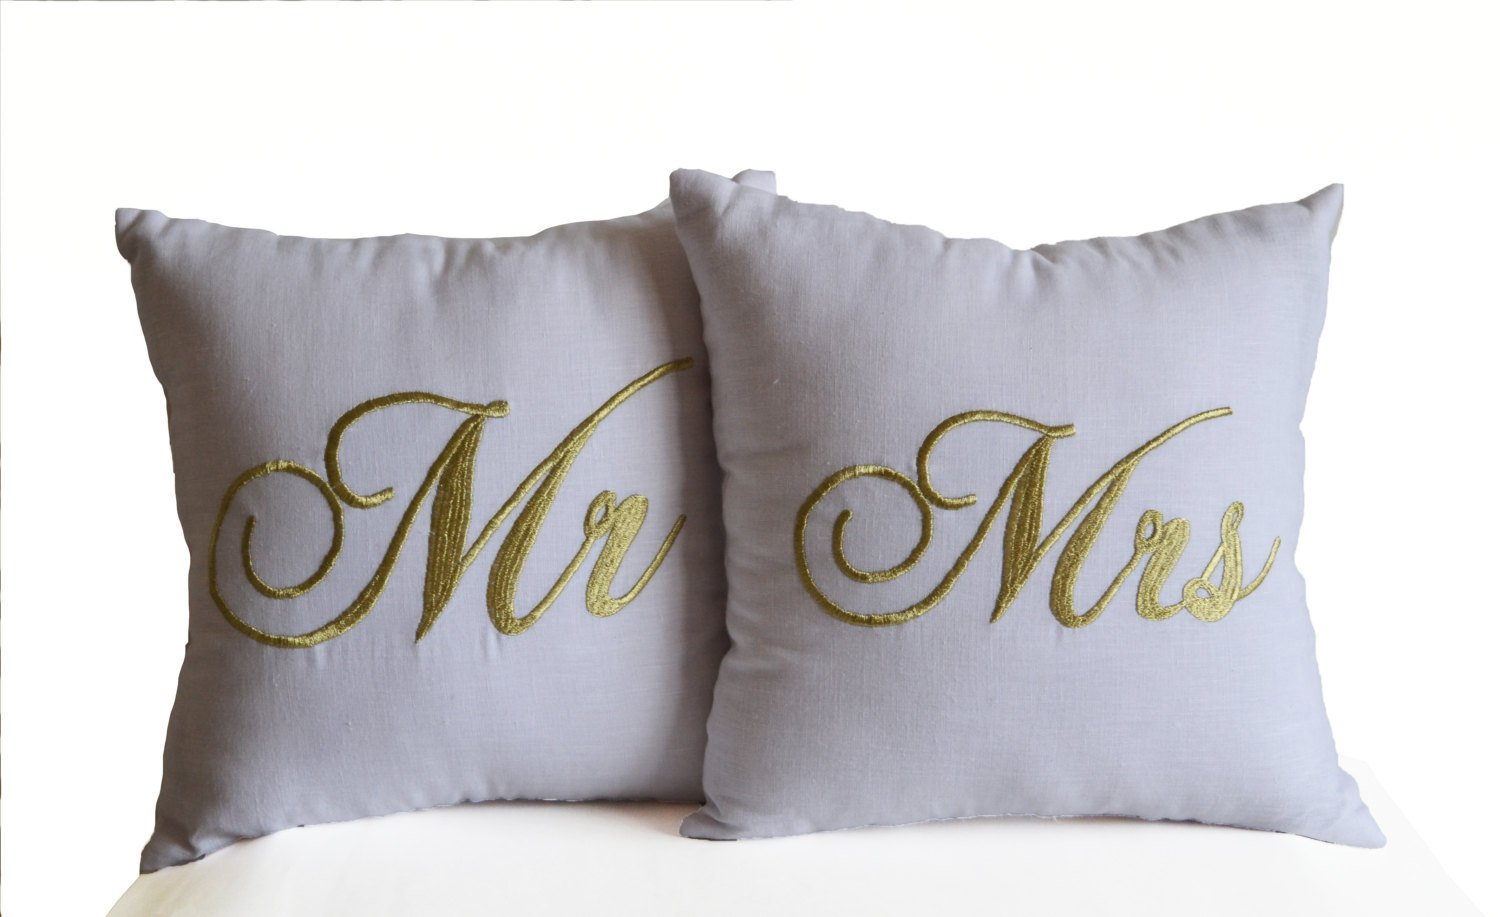 Amore Beaute手作りカスタマイズ可能なMr Mrs Couple Love刺繍枕カバー装飾投げ枕Cases結婚記念日新築祝いギフトの2つのセット(枕カバー) 14x24 Inches ホワイト wht-linen-gold-embrdry-Mr_Mrs 14x24 Inches  B011ZTKXSI